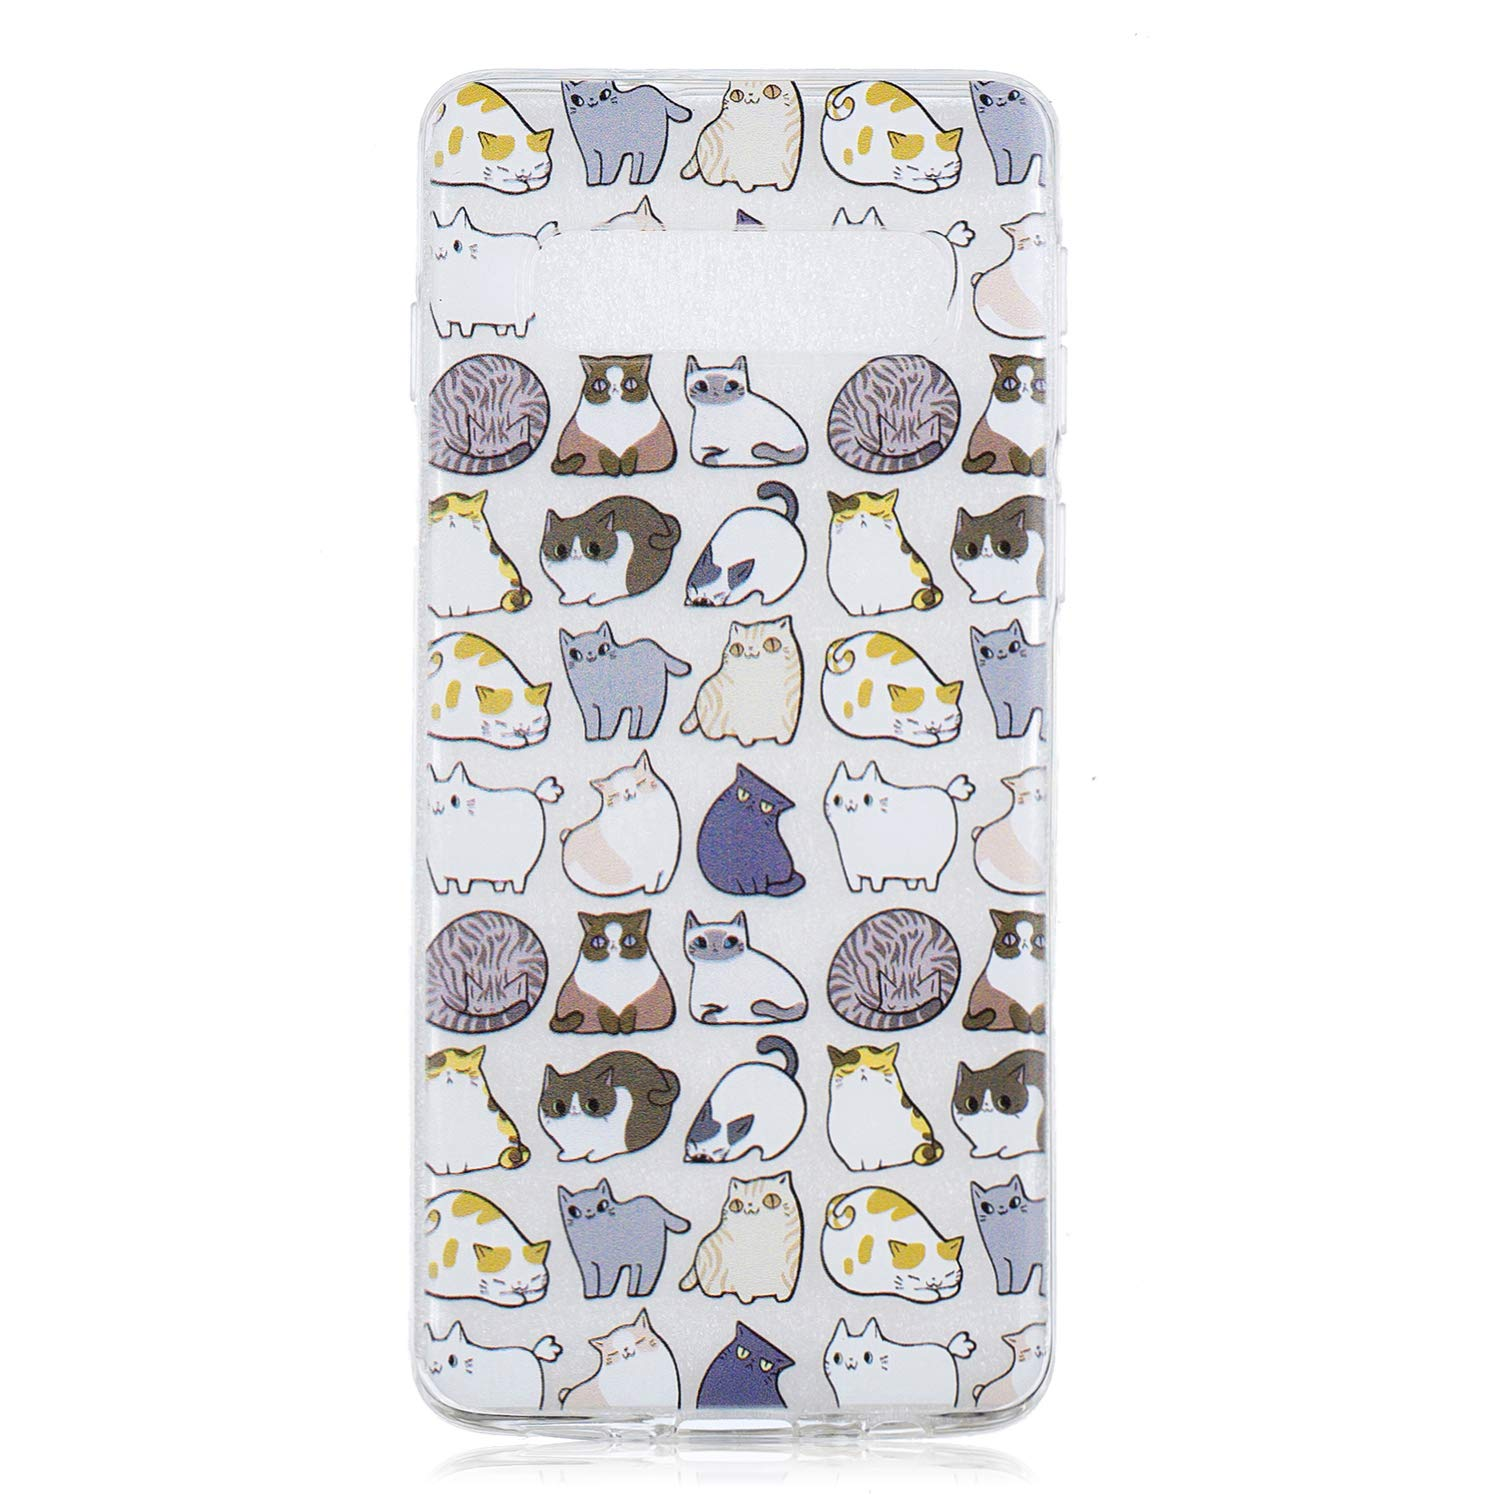 Galaxy S10e Case, for S10e 5.8'', MerKuyom Lightweight [Clear Crystal Transparent] Slim-Fit Flexible Gel Soft TPU Case Cover for Samsung Galaxy S10e 5.8-inch, W/Stylus (Mulitple Cute Cats)